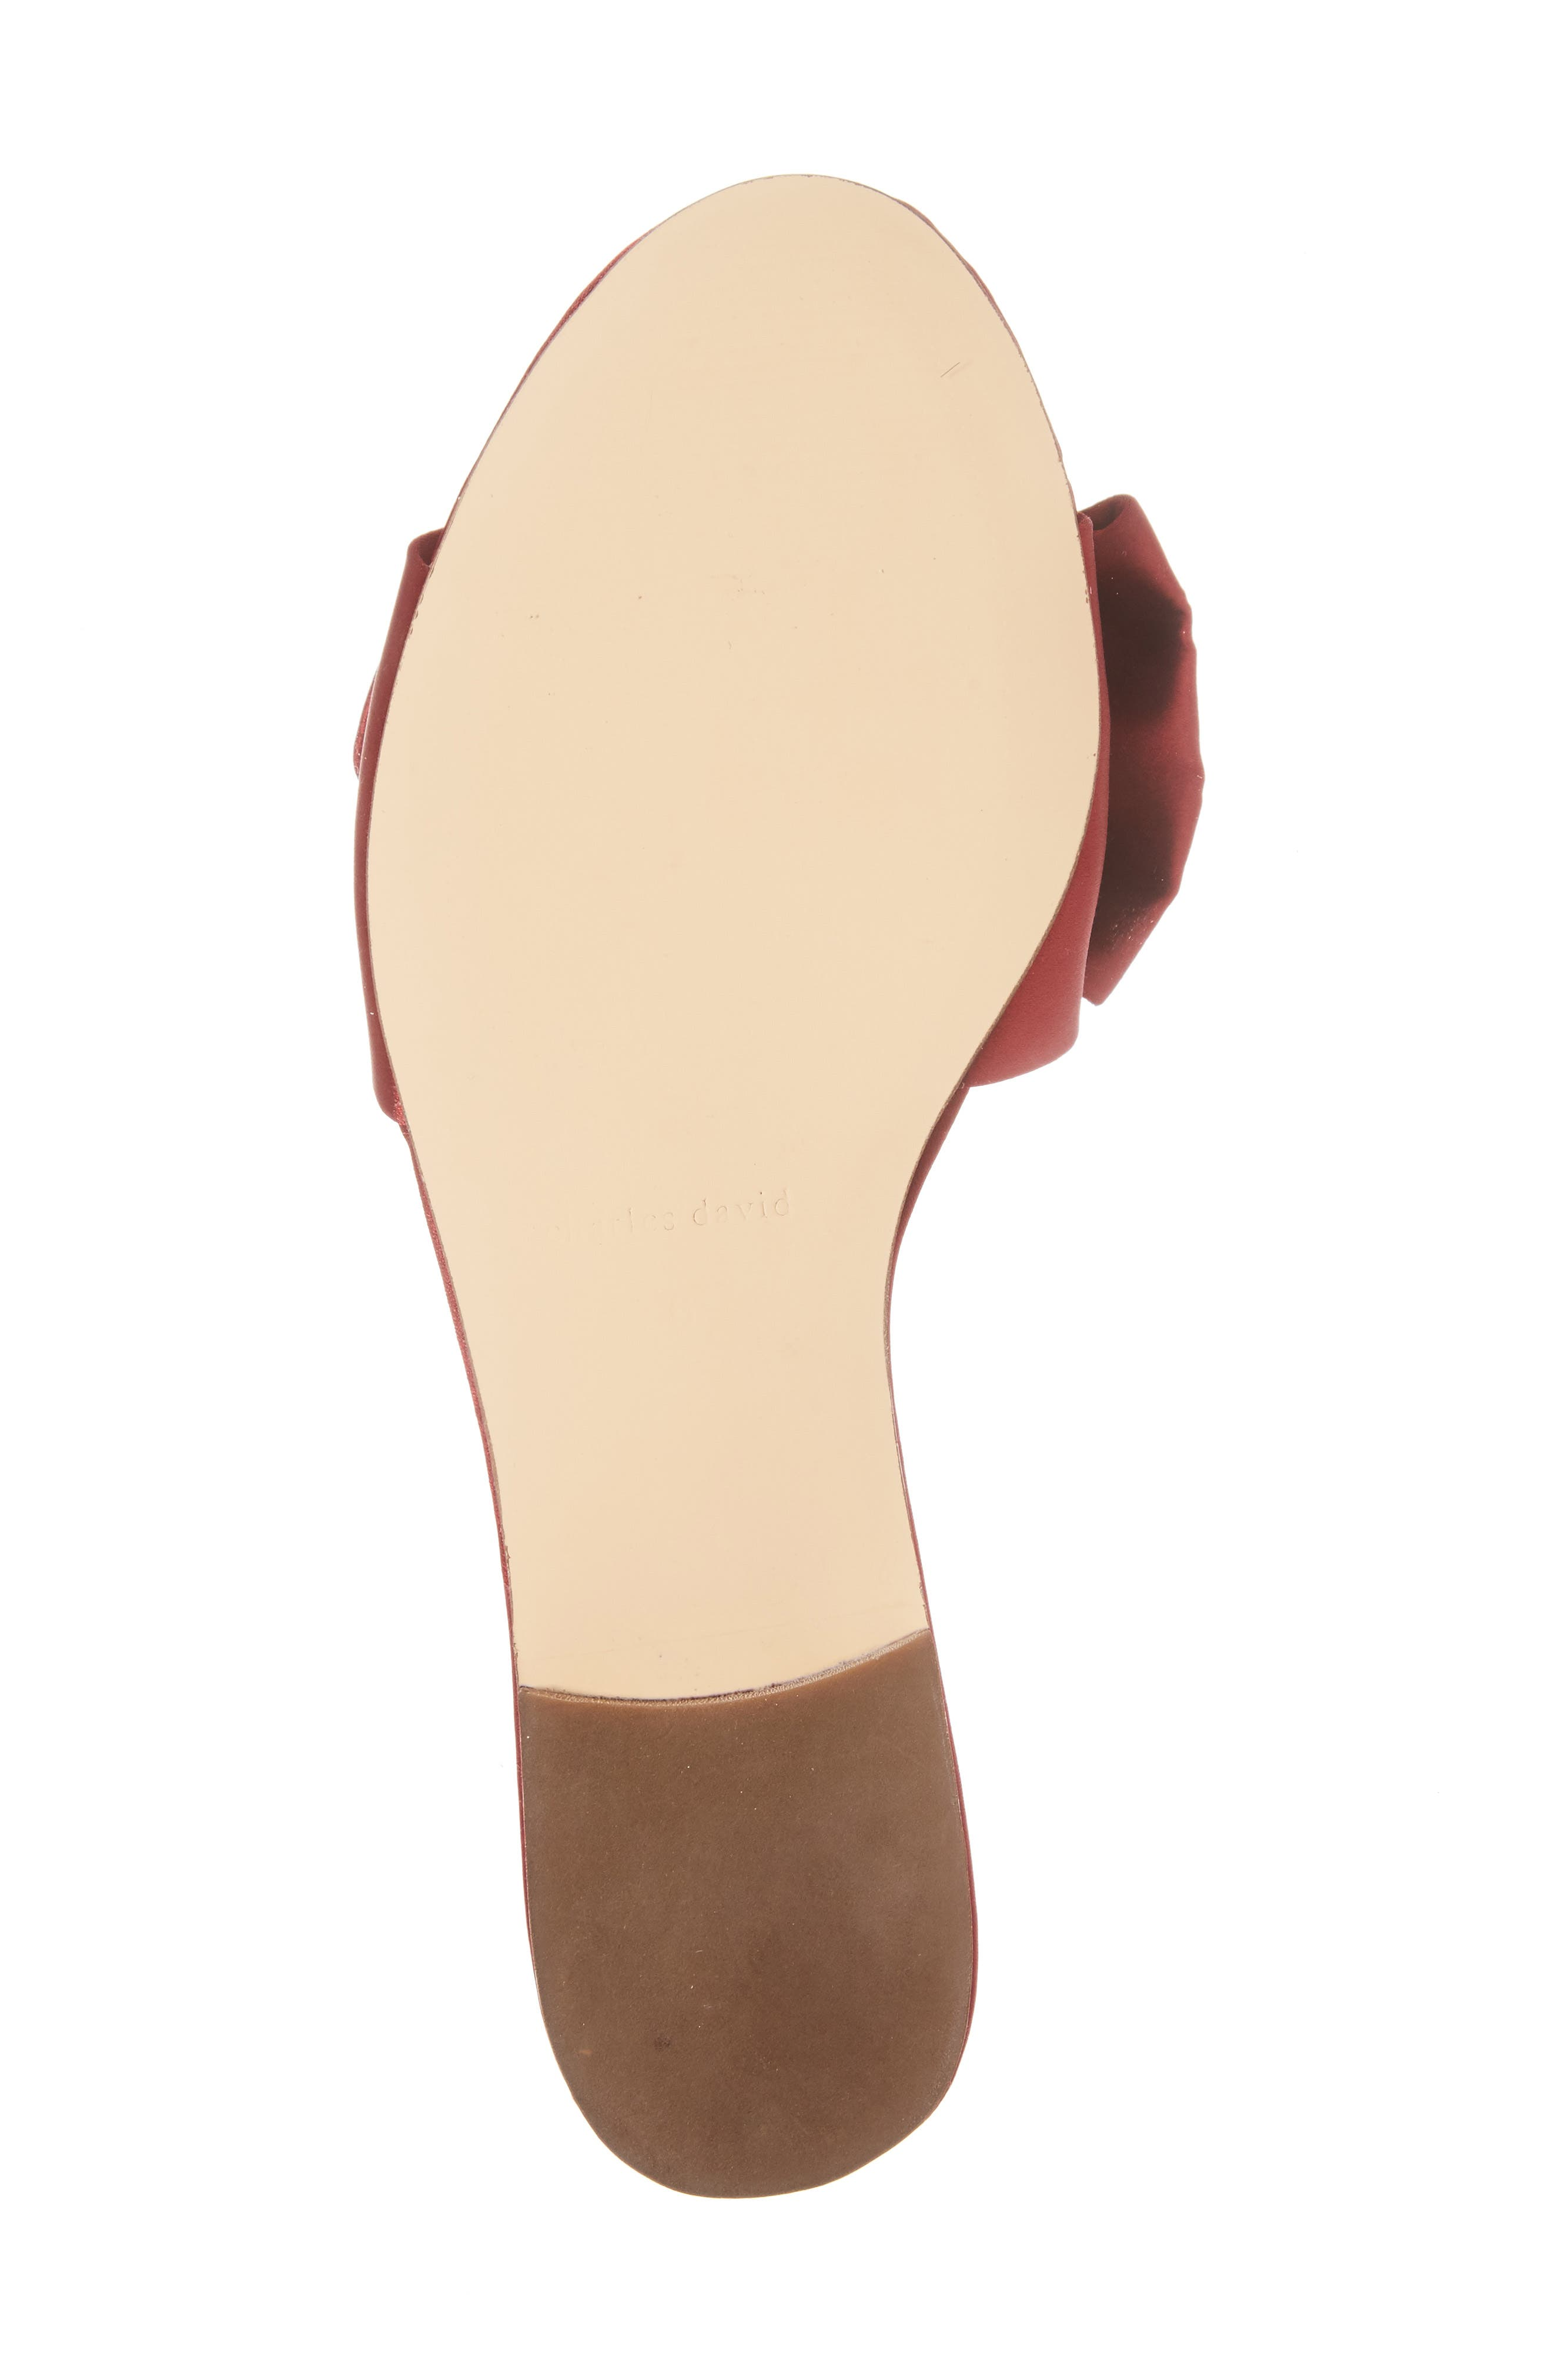 Bow Slide Sandal,                             Alternate thumbnail 6, color,                             Burgundy Satin